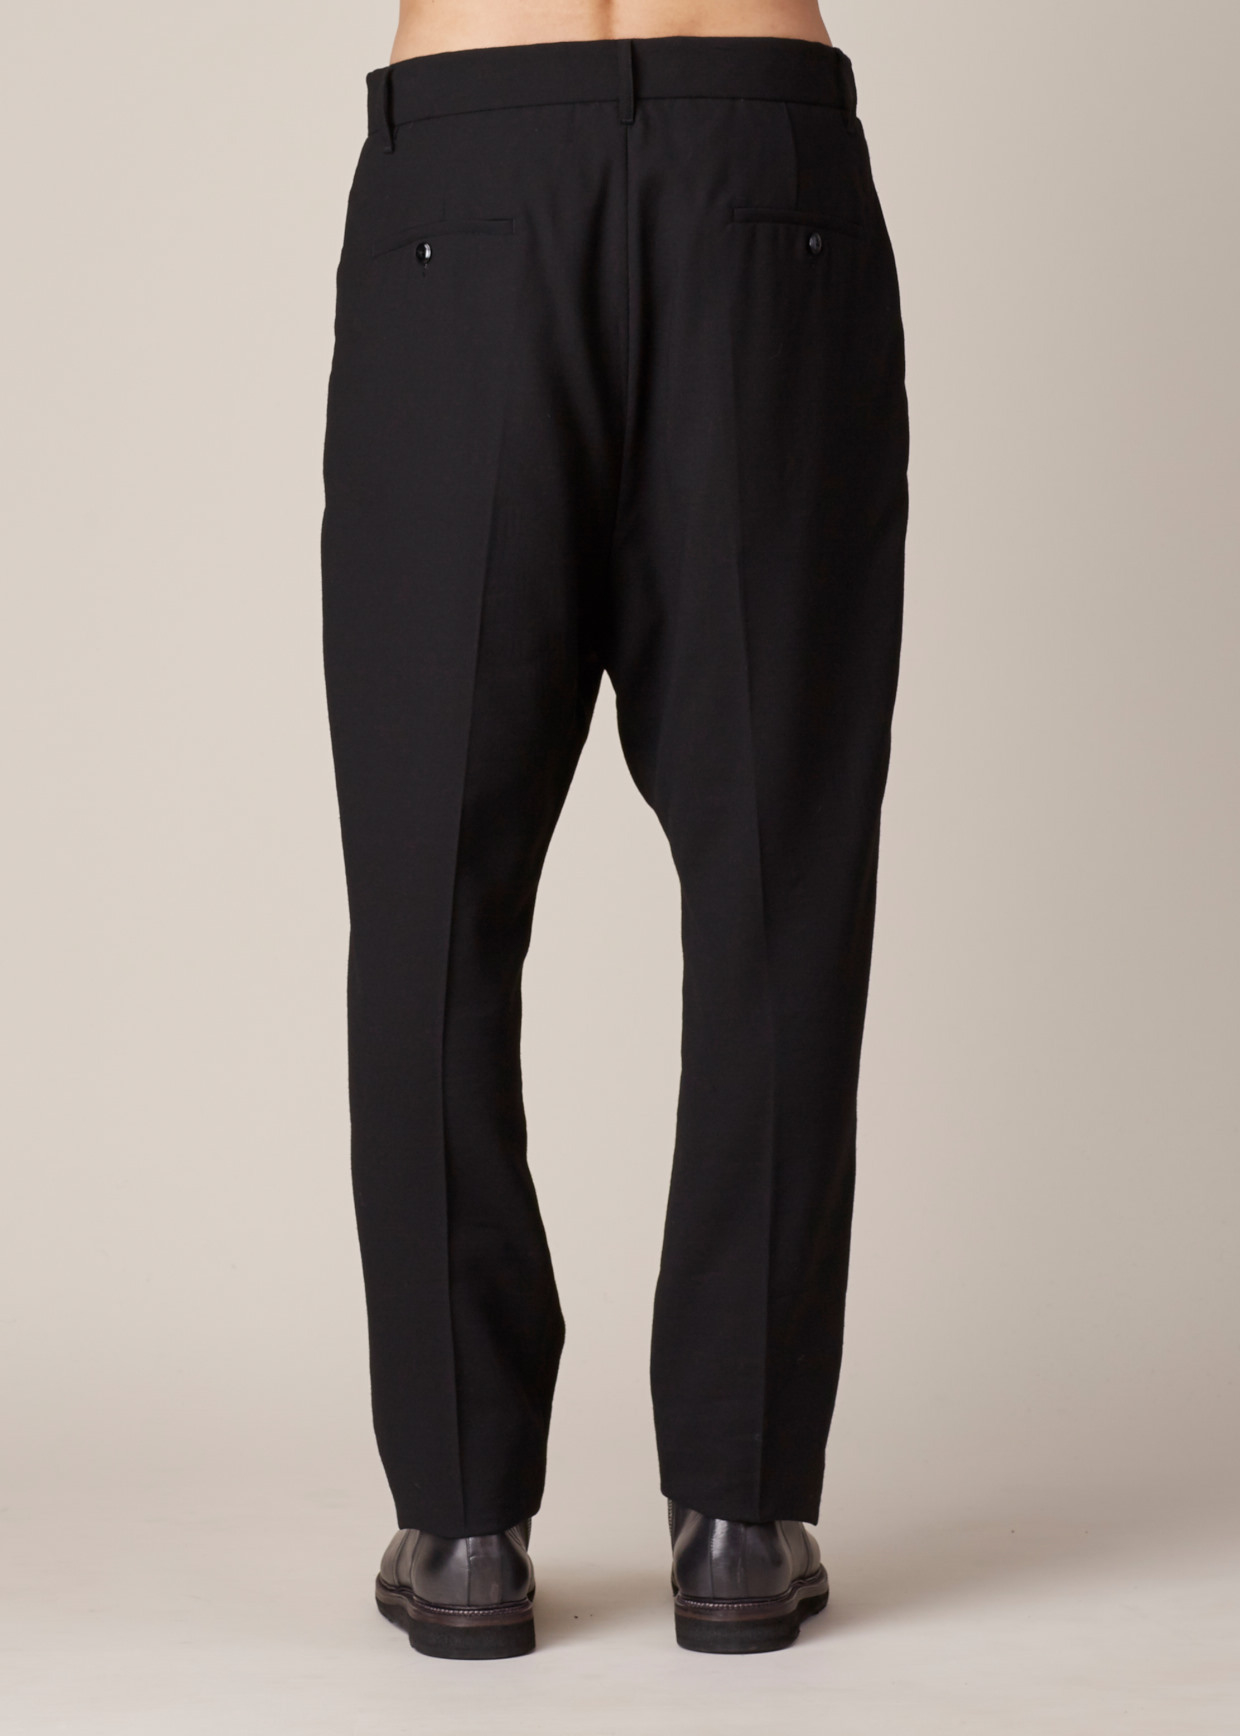 Tux Astaires trousers - Black Rick Owens xttpG8QH